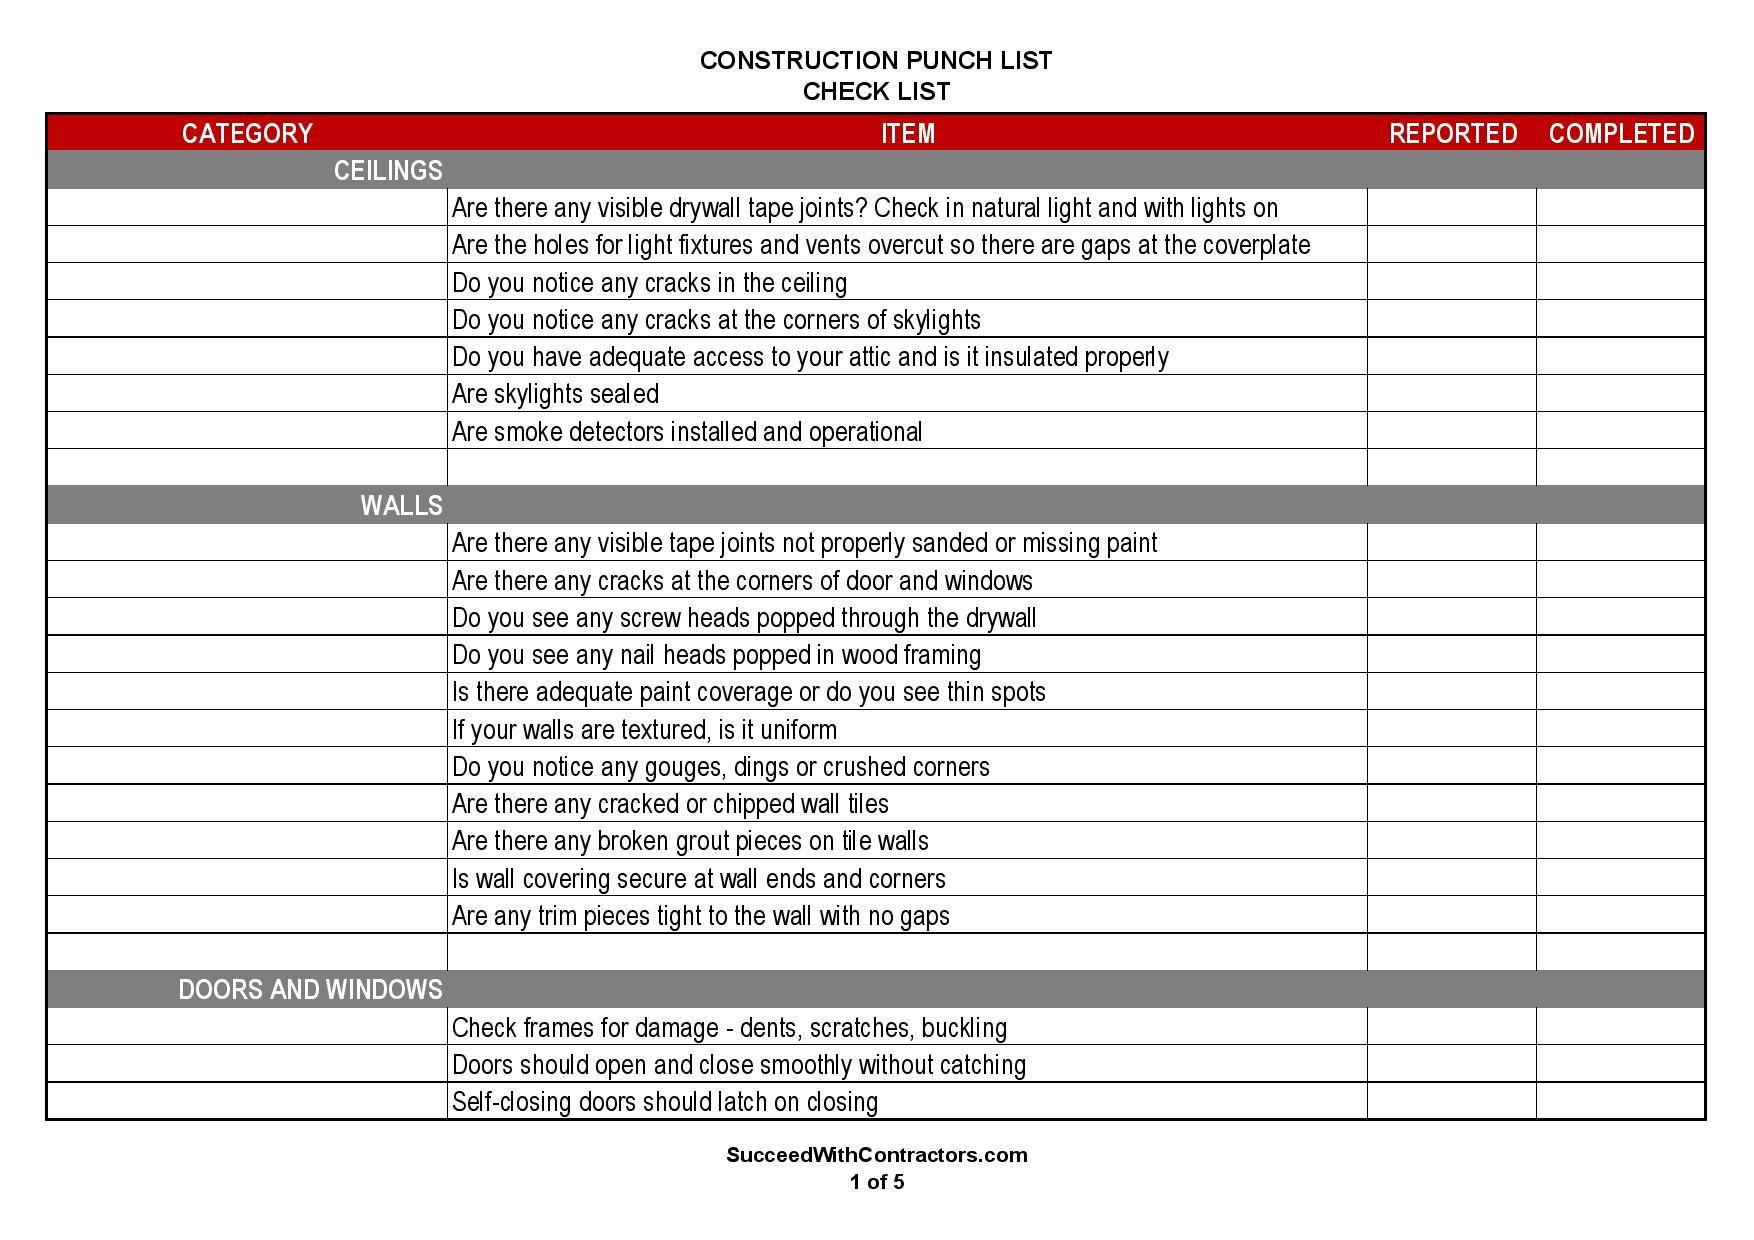 000 Magnificent Construction Punch List Template High Resolution  New Home PdfFull